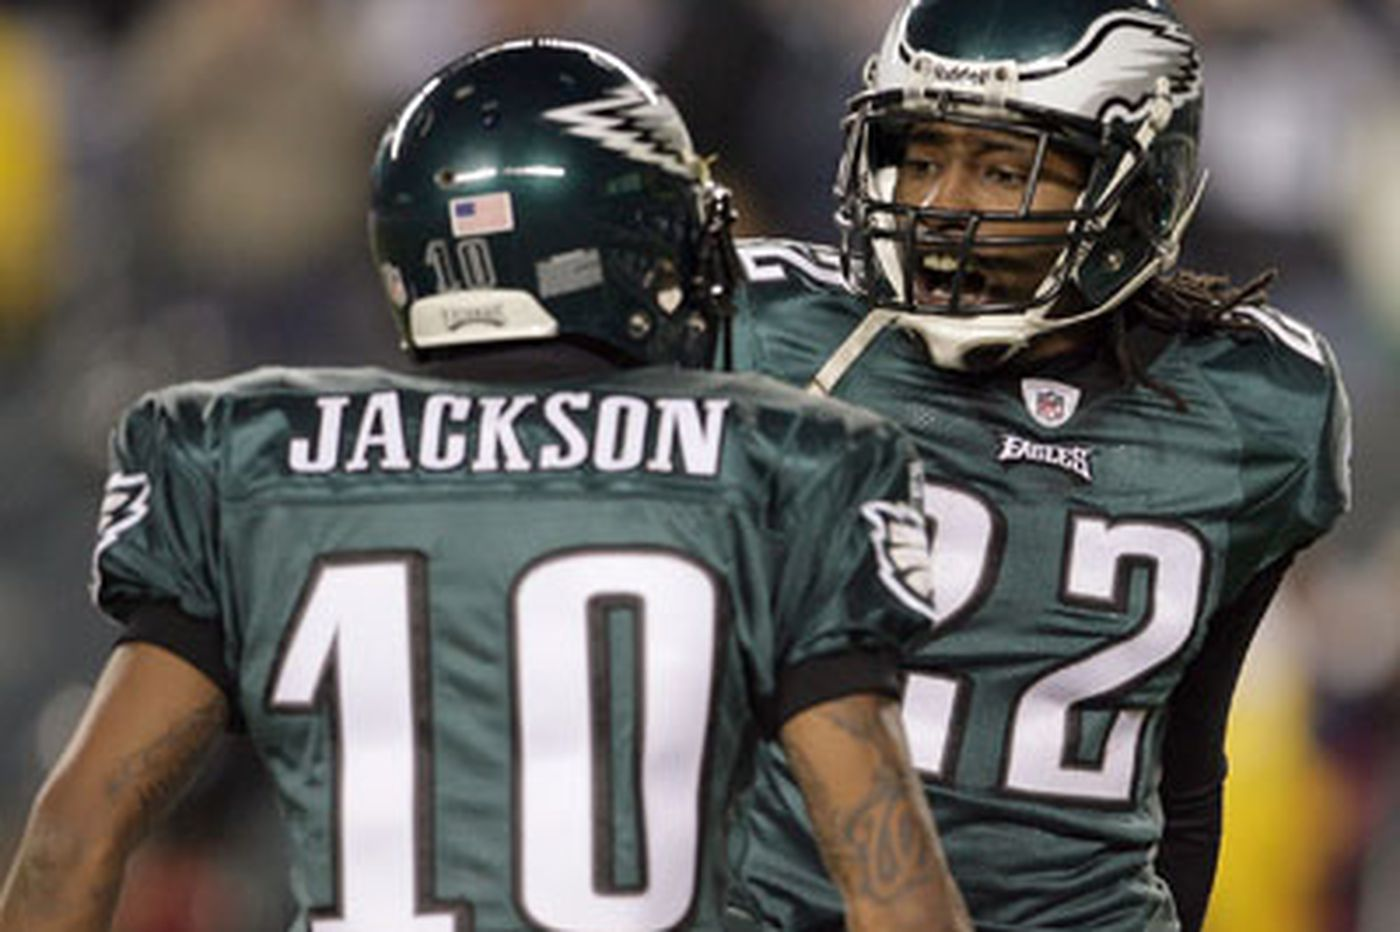 For Eagles, Jackson confident, Samuel coy, and Justice unsure